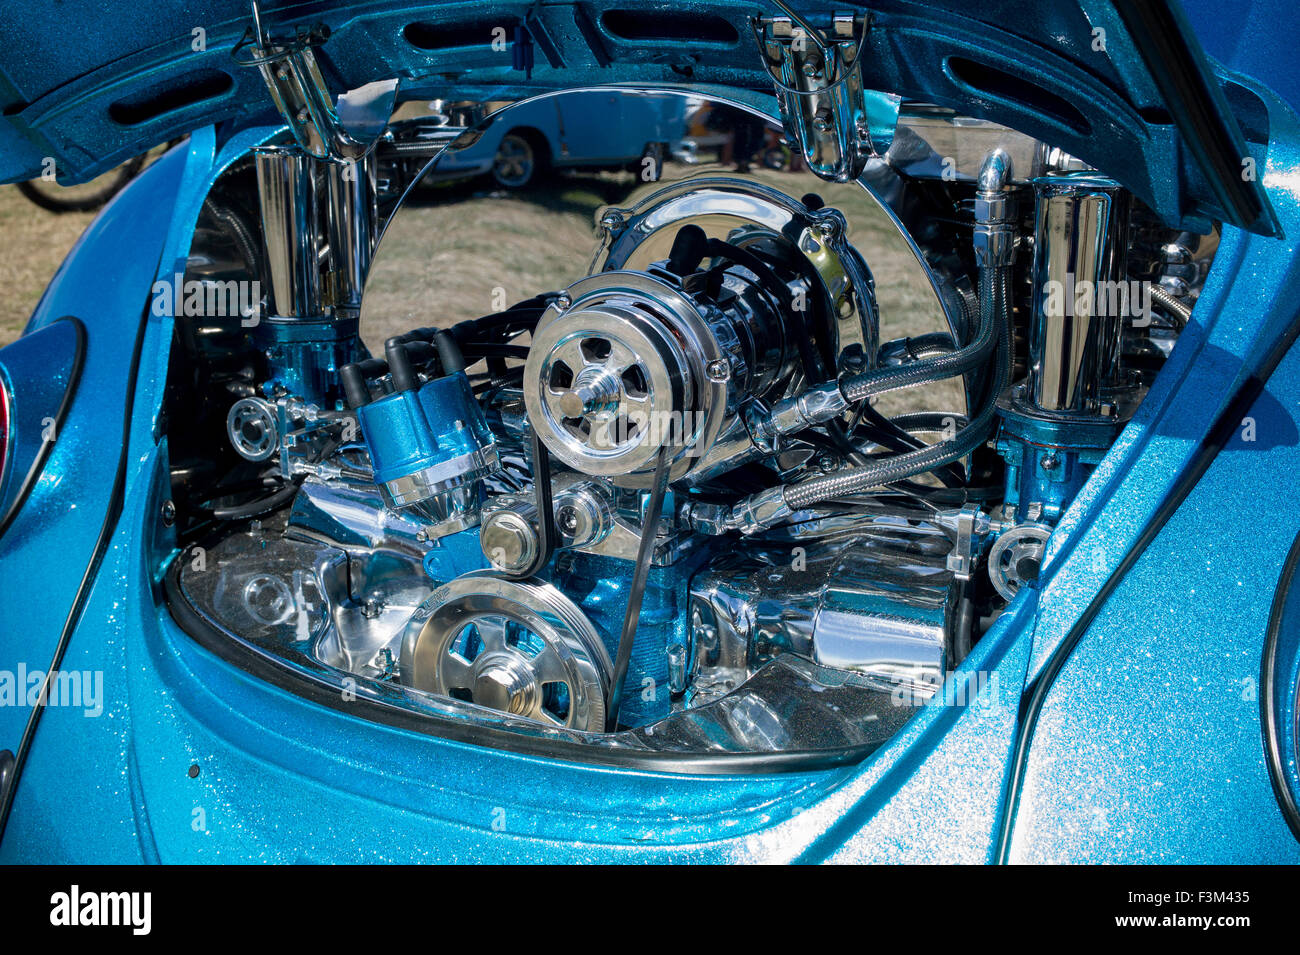 Vw Engine High Resolution Stock Photography And Images Alamy